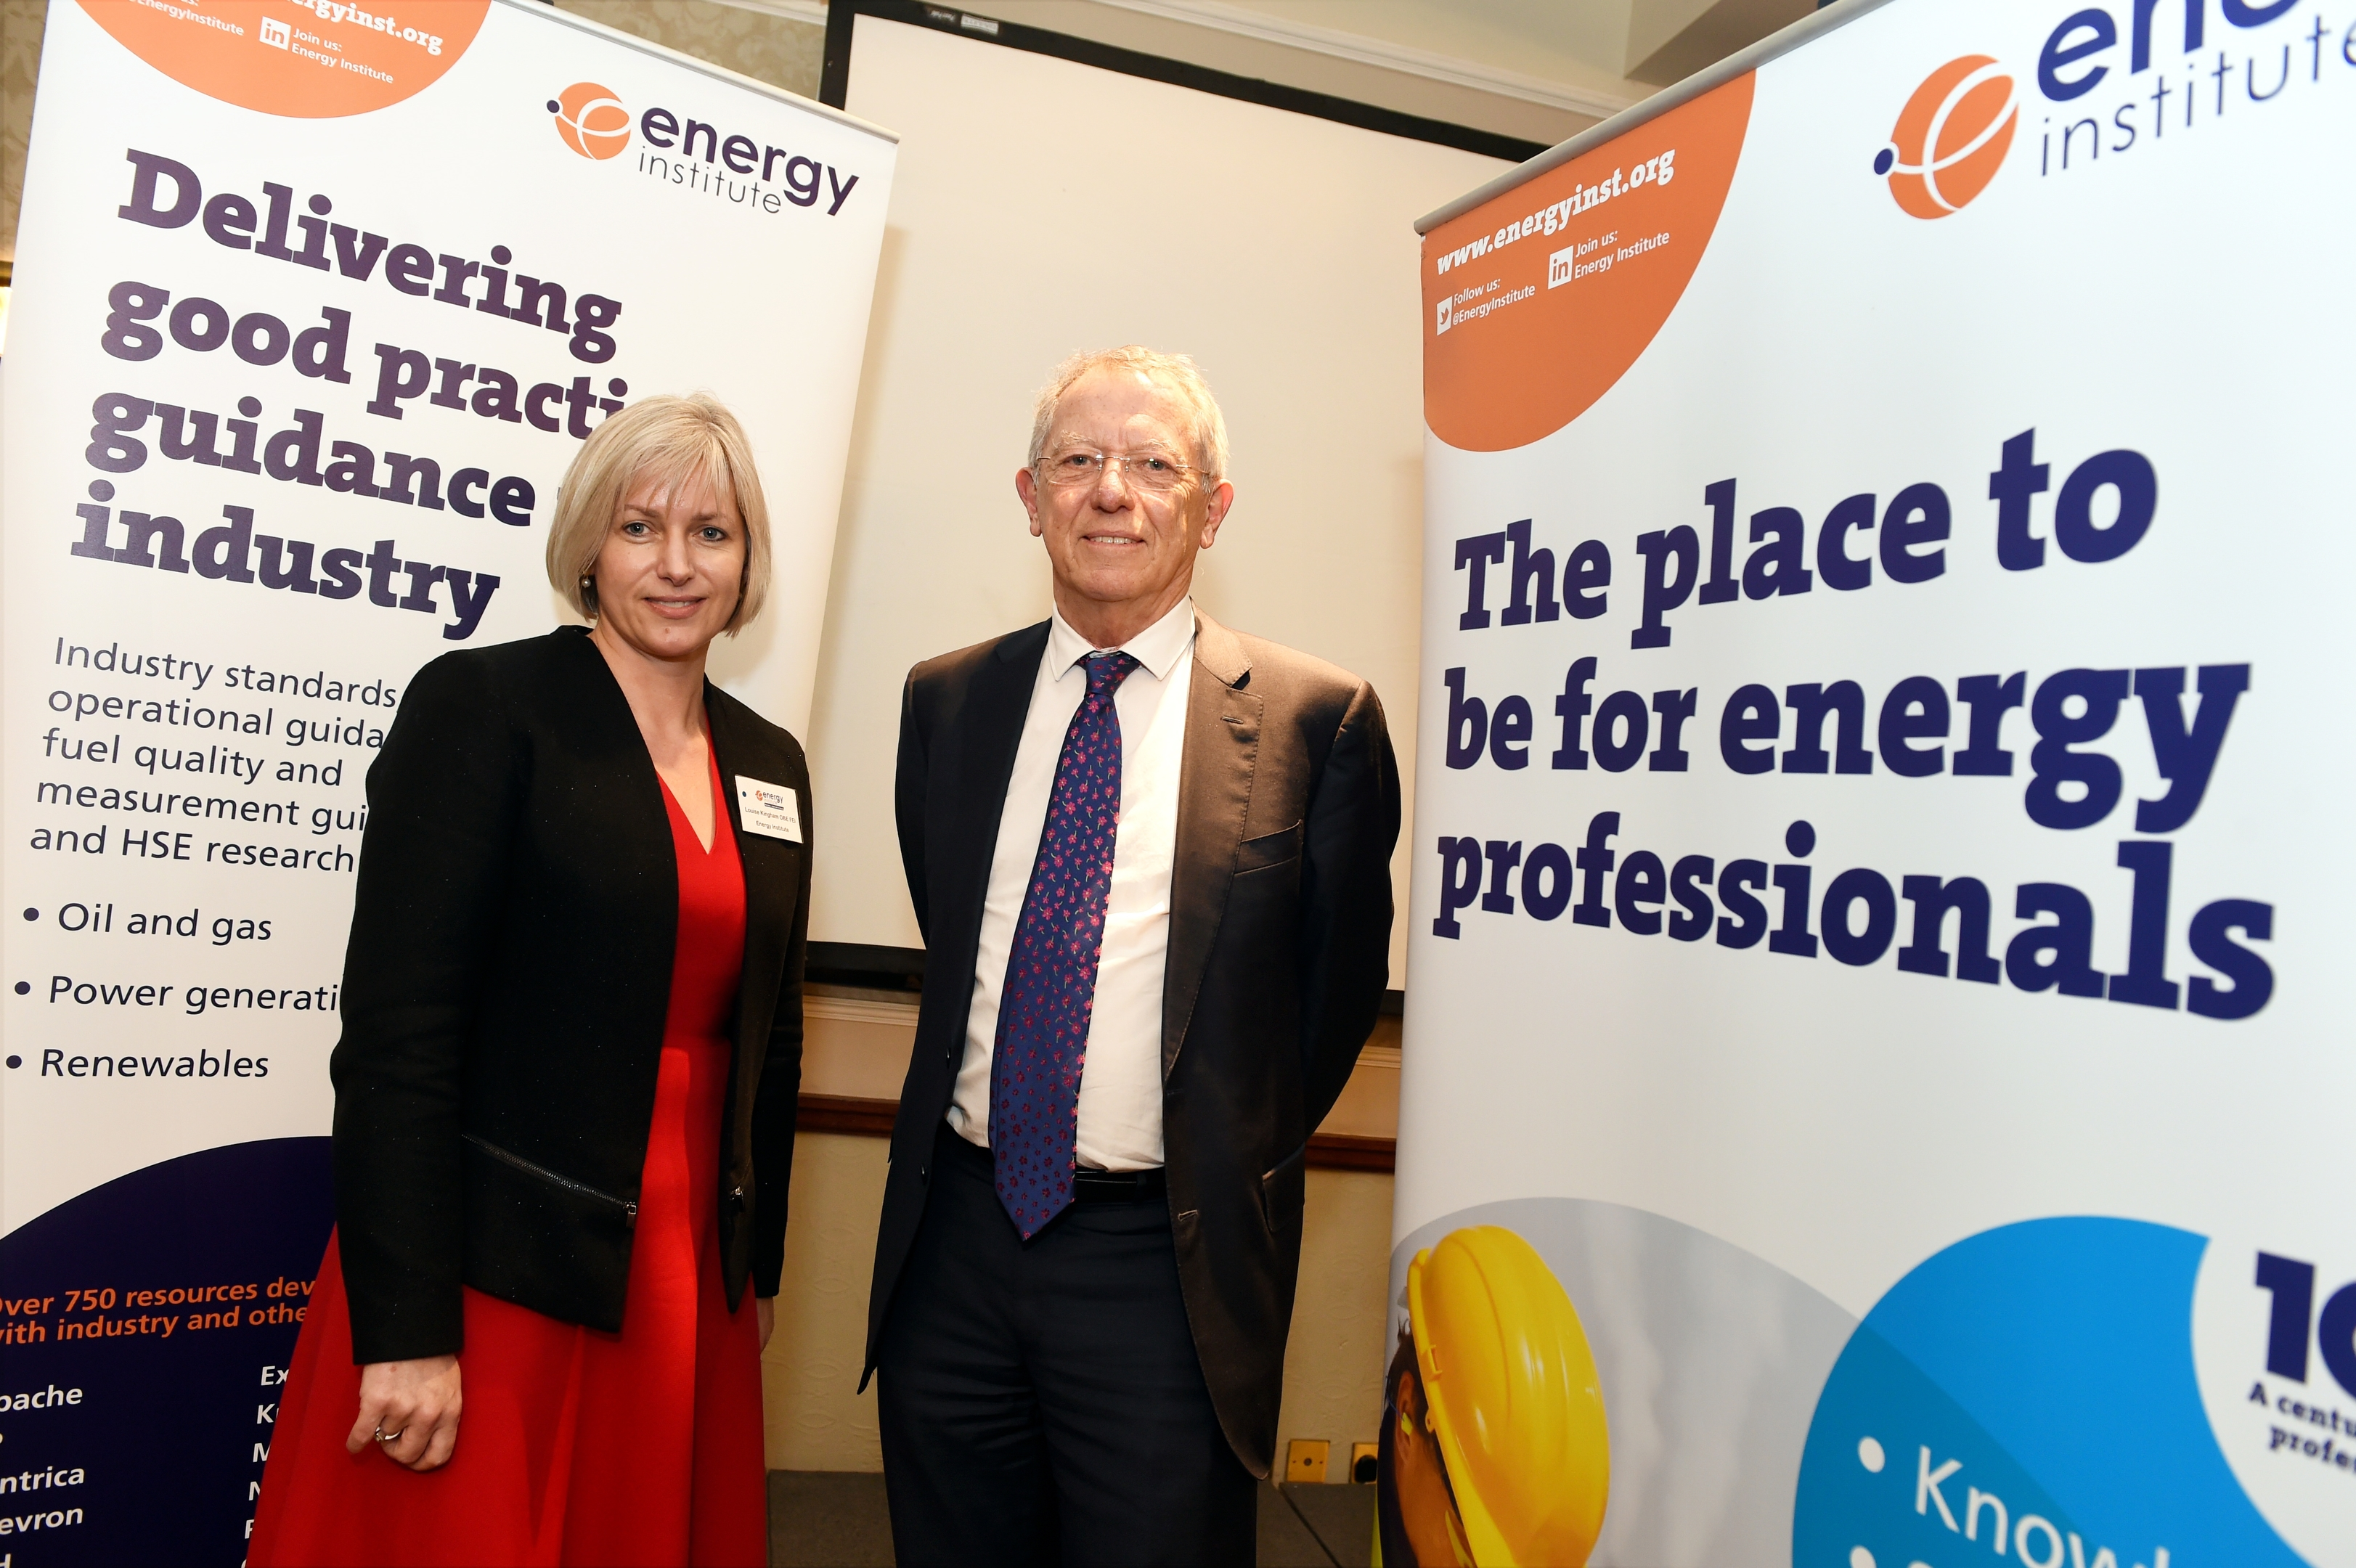 Energy Institute CEO Louise Kingham and Sir David King